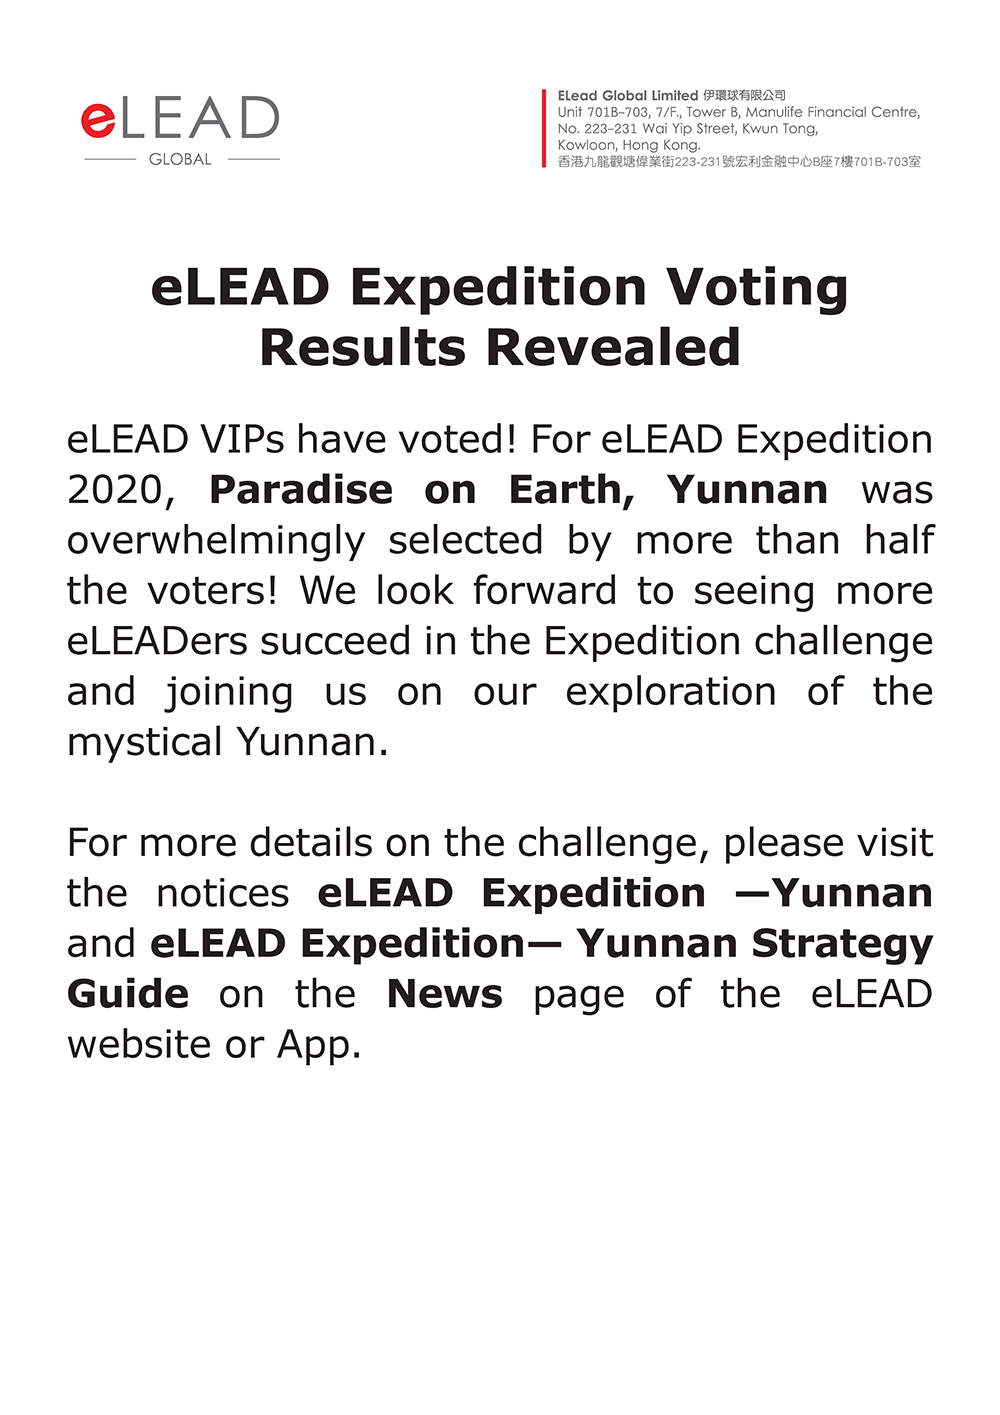 eLEAD Expedition Voting Results Revealed